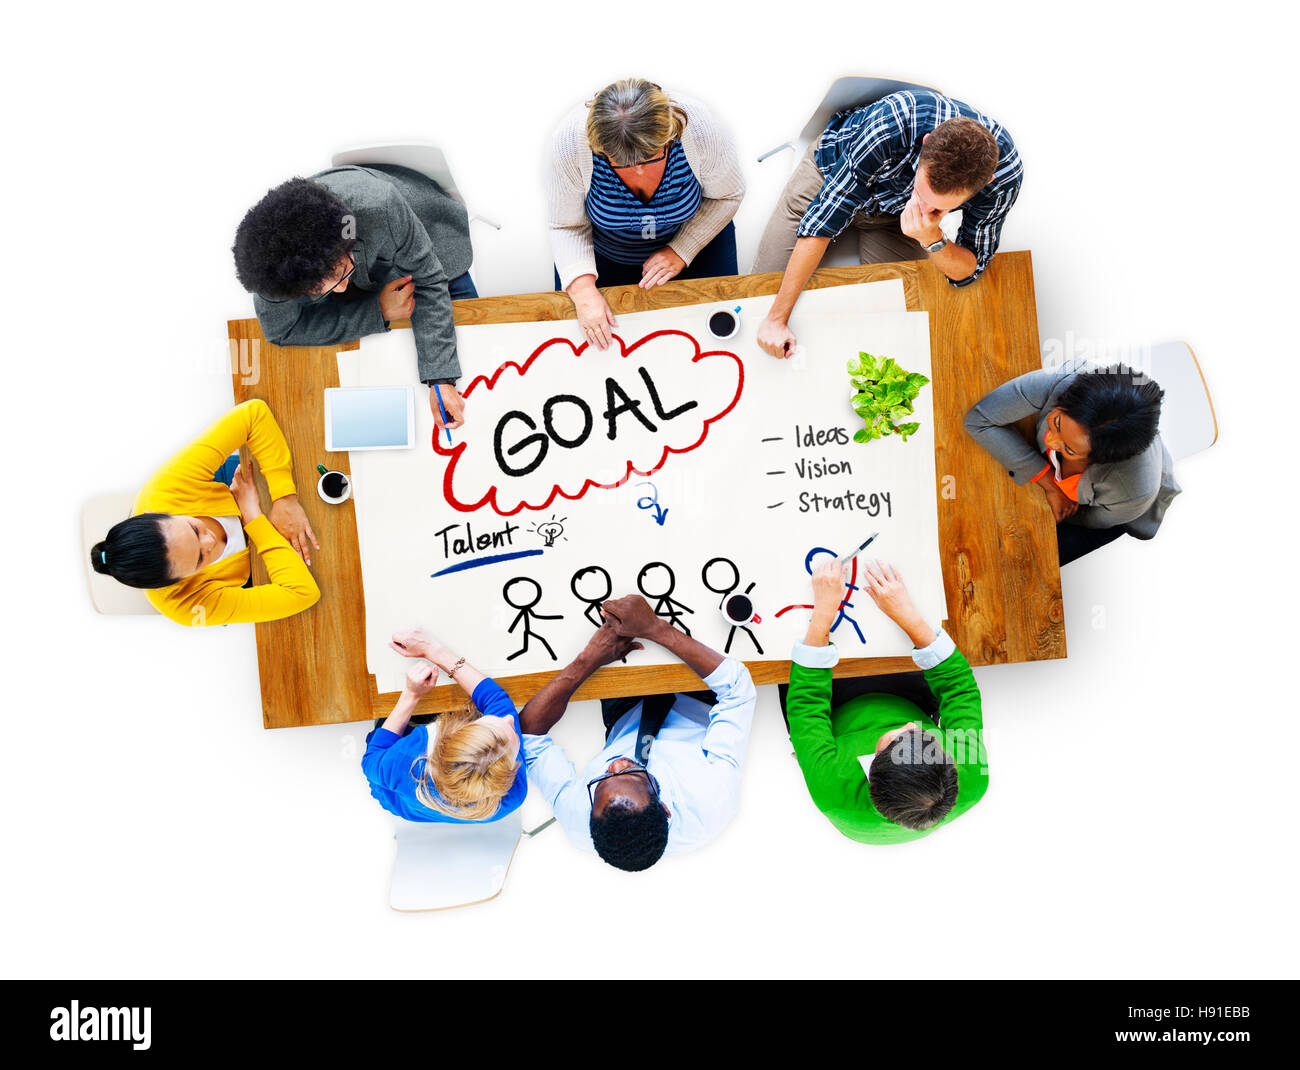 Goal Expectation Target Mission Aim Concept - Stock Image